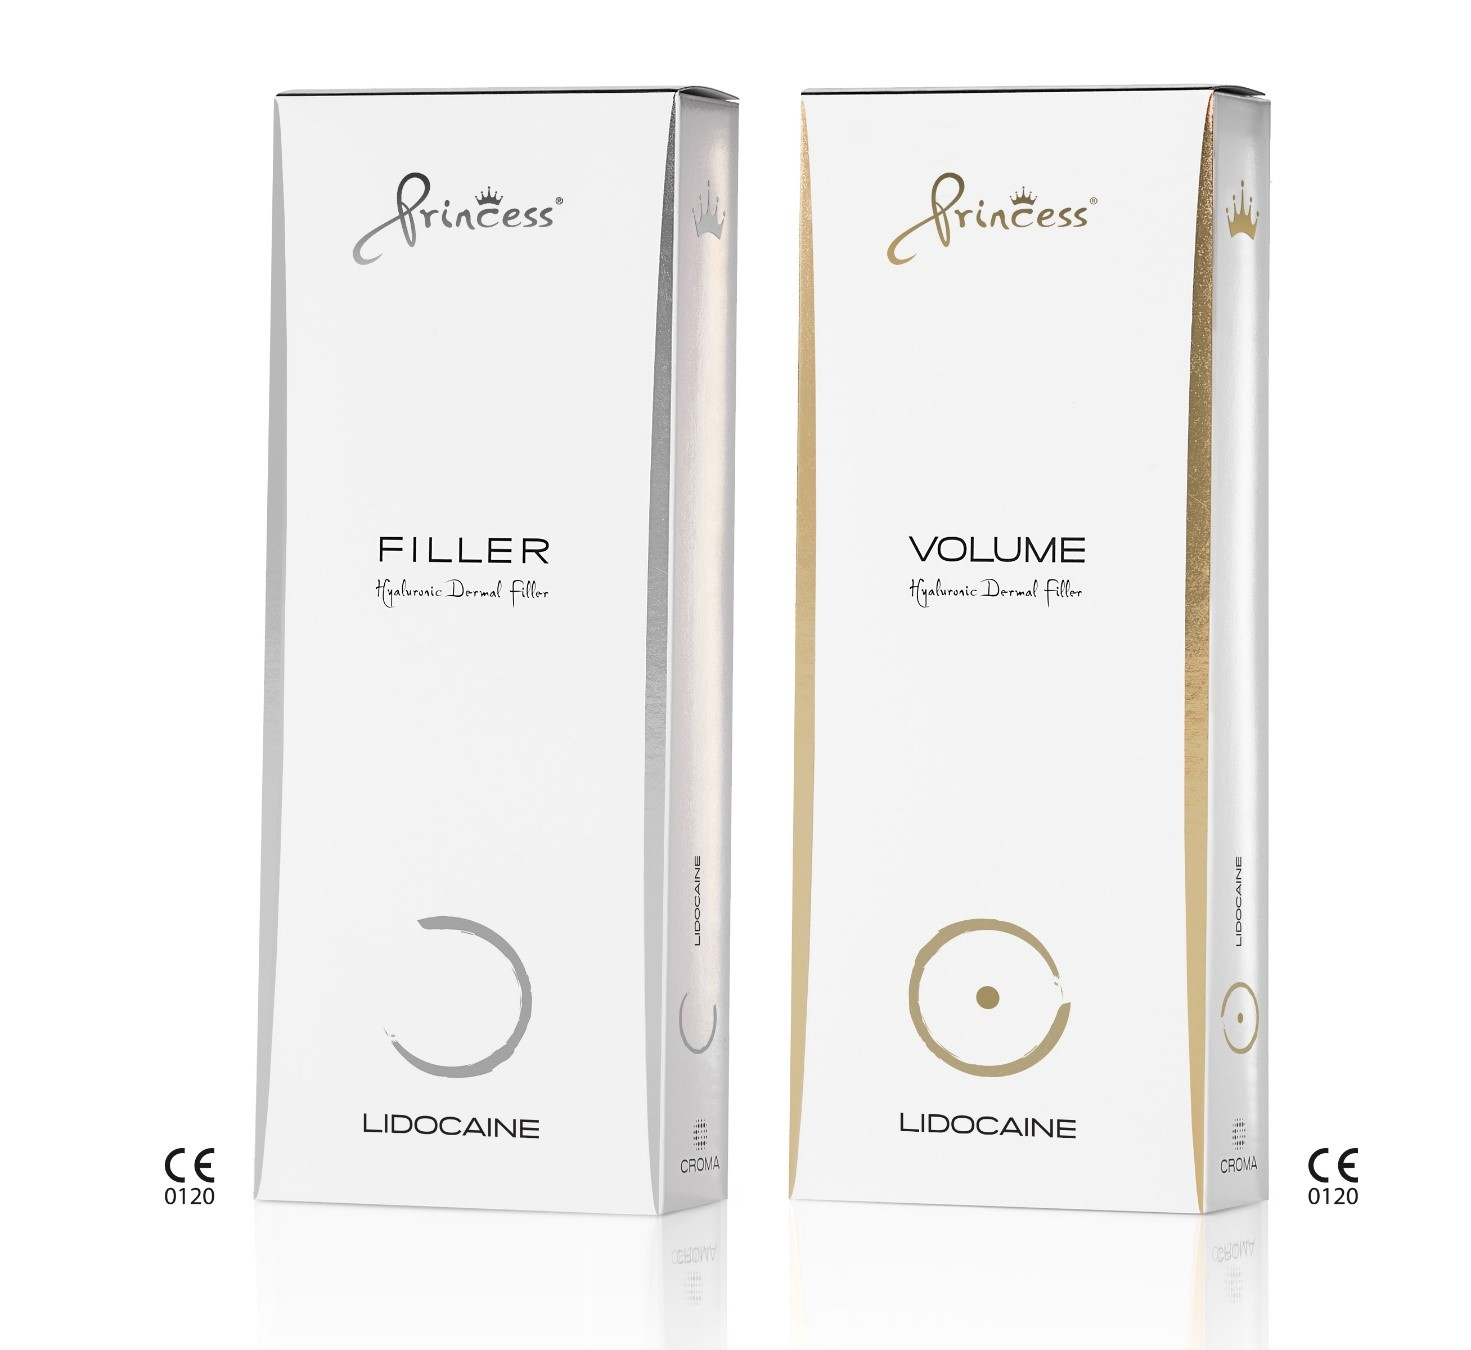 Princess Filler and Princess Volume Packs